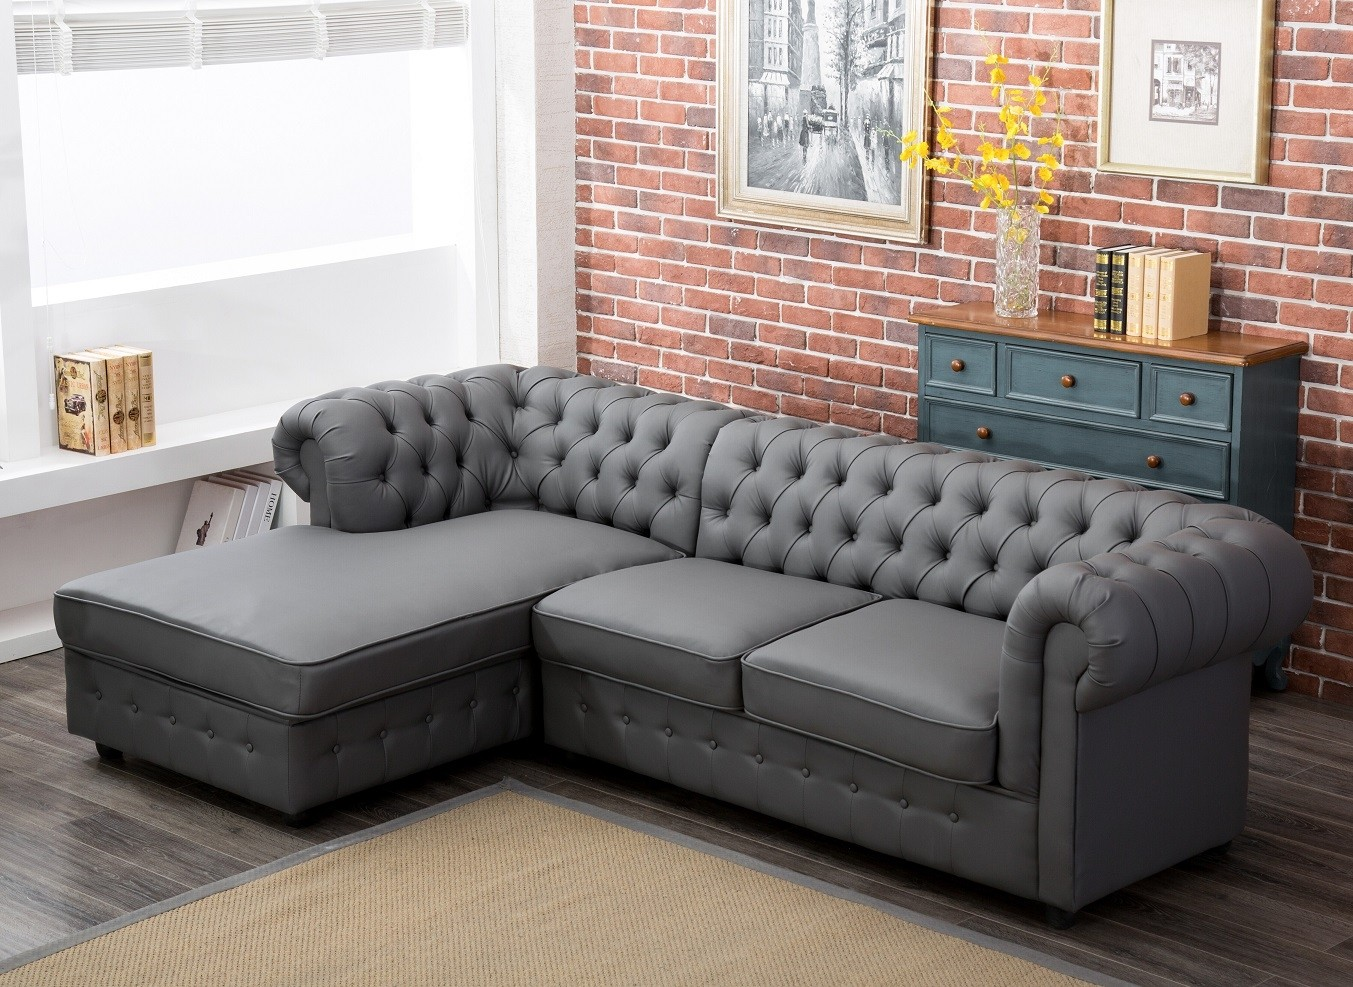 Empire Chesterfield Corner Sofa Bed In Grey Pu Leather Abreo Home Furniture